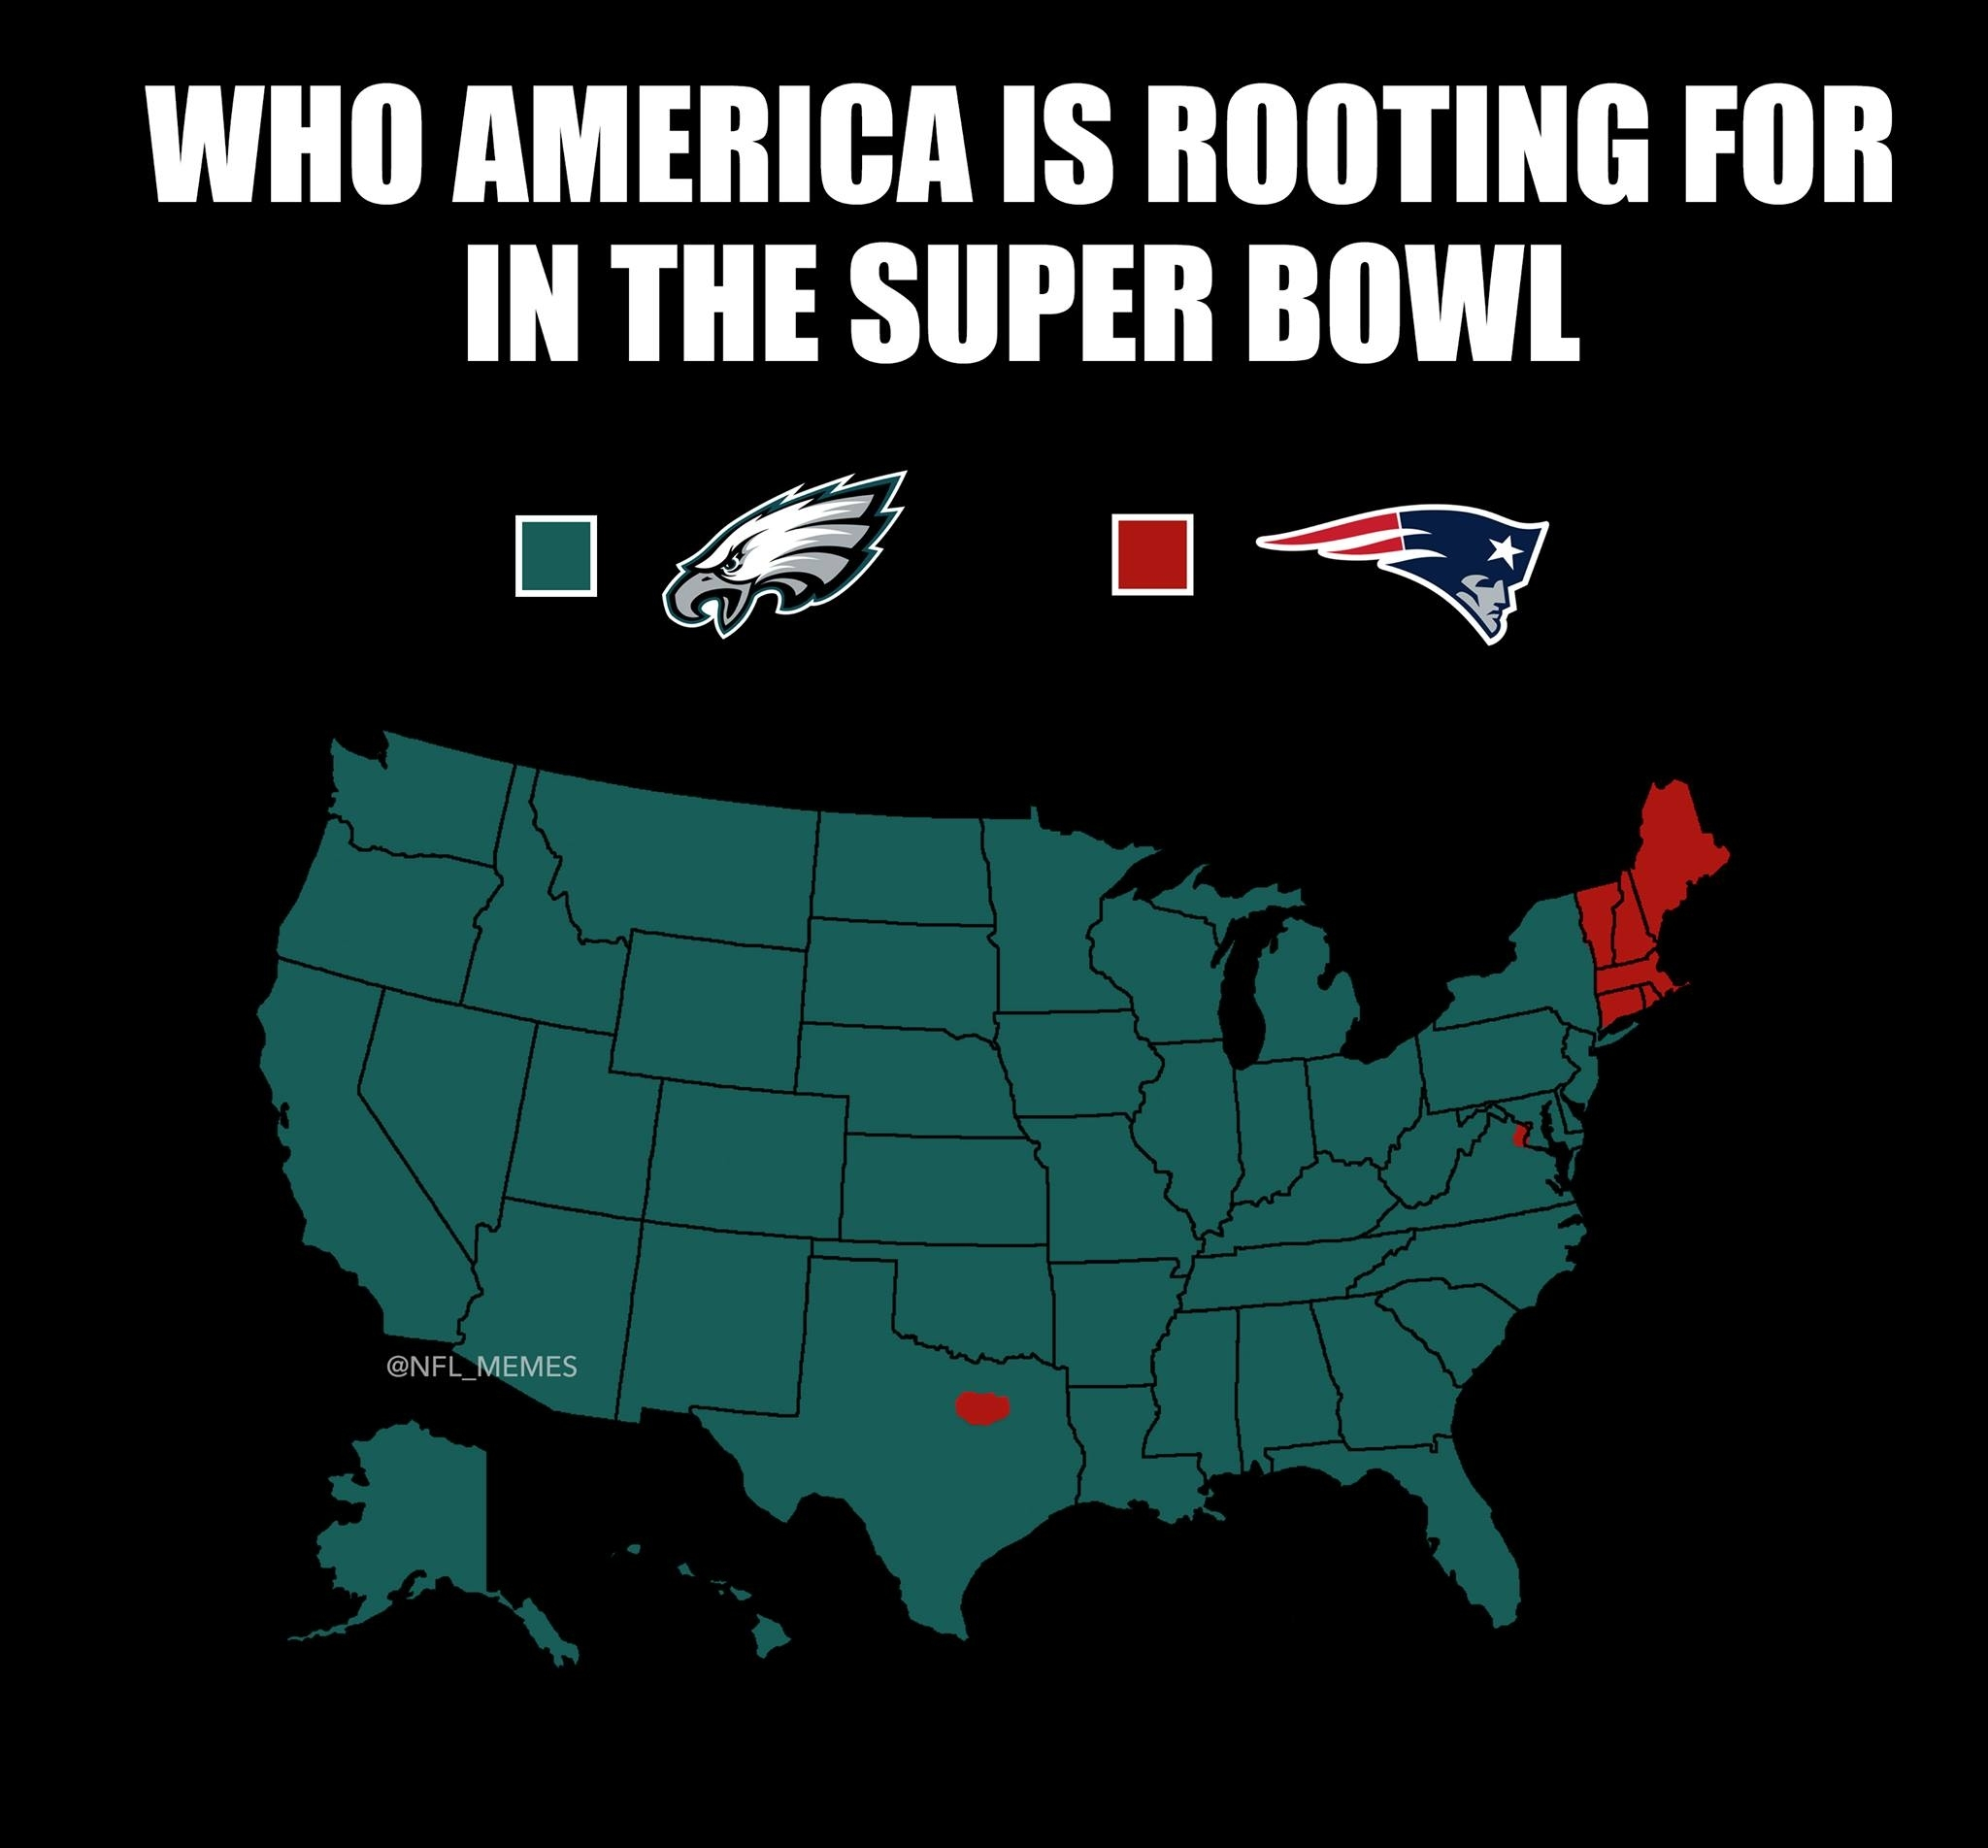 Who America Is Rooting For In The Super Bowl - Common Sense for Map Of Who Is Rooting For Super Bowl